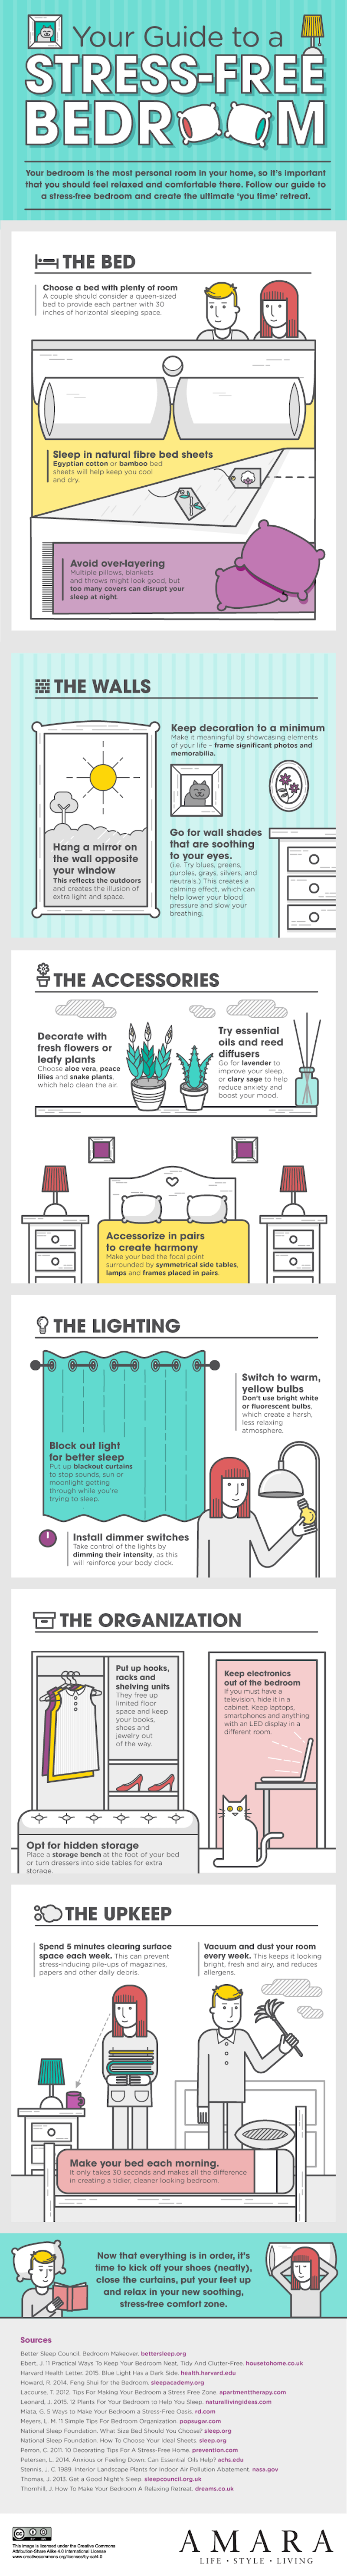 Simple Ways to Transform Your Bedroom into a Stress-Free Getaway